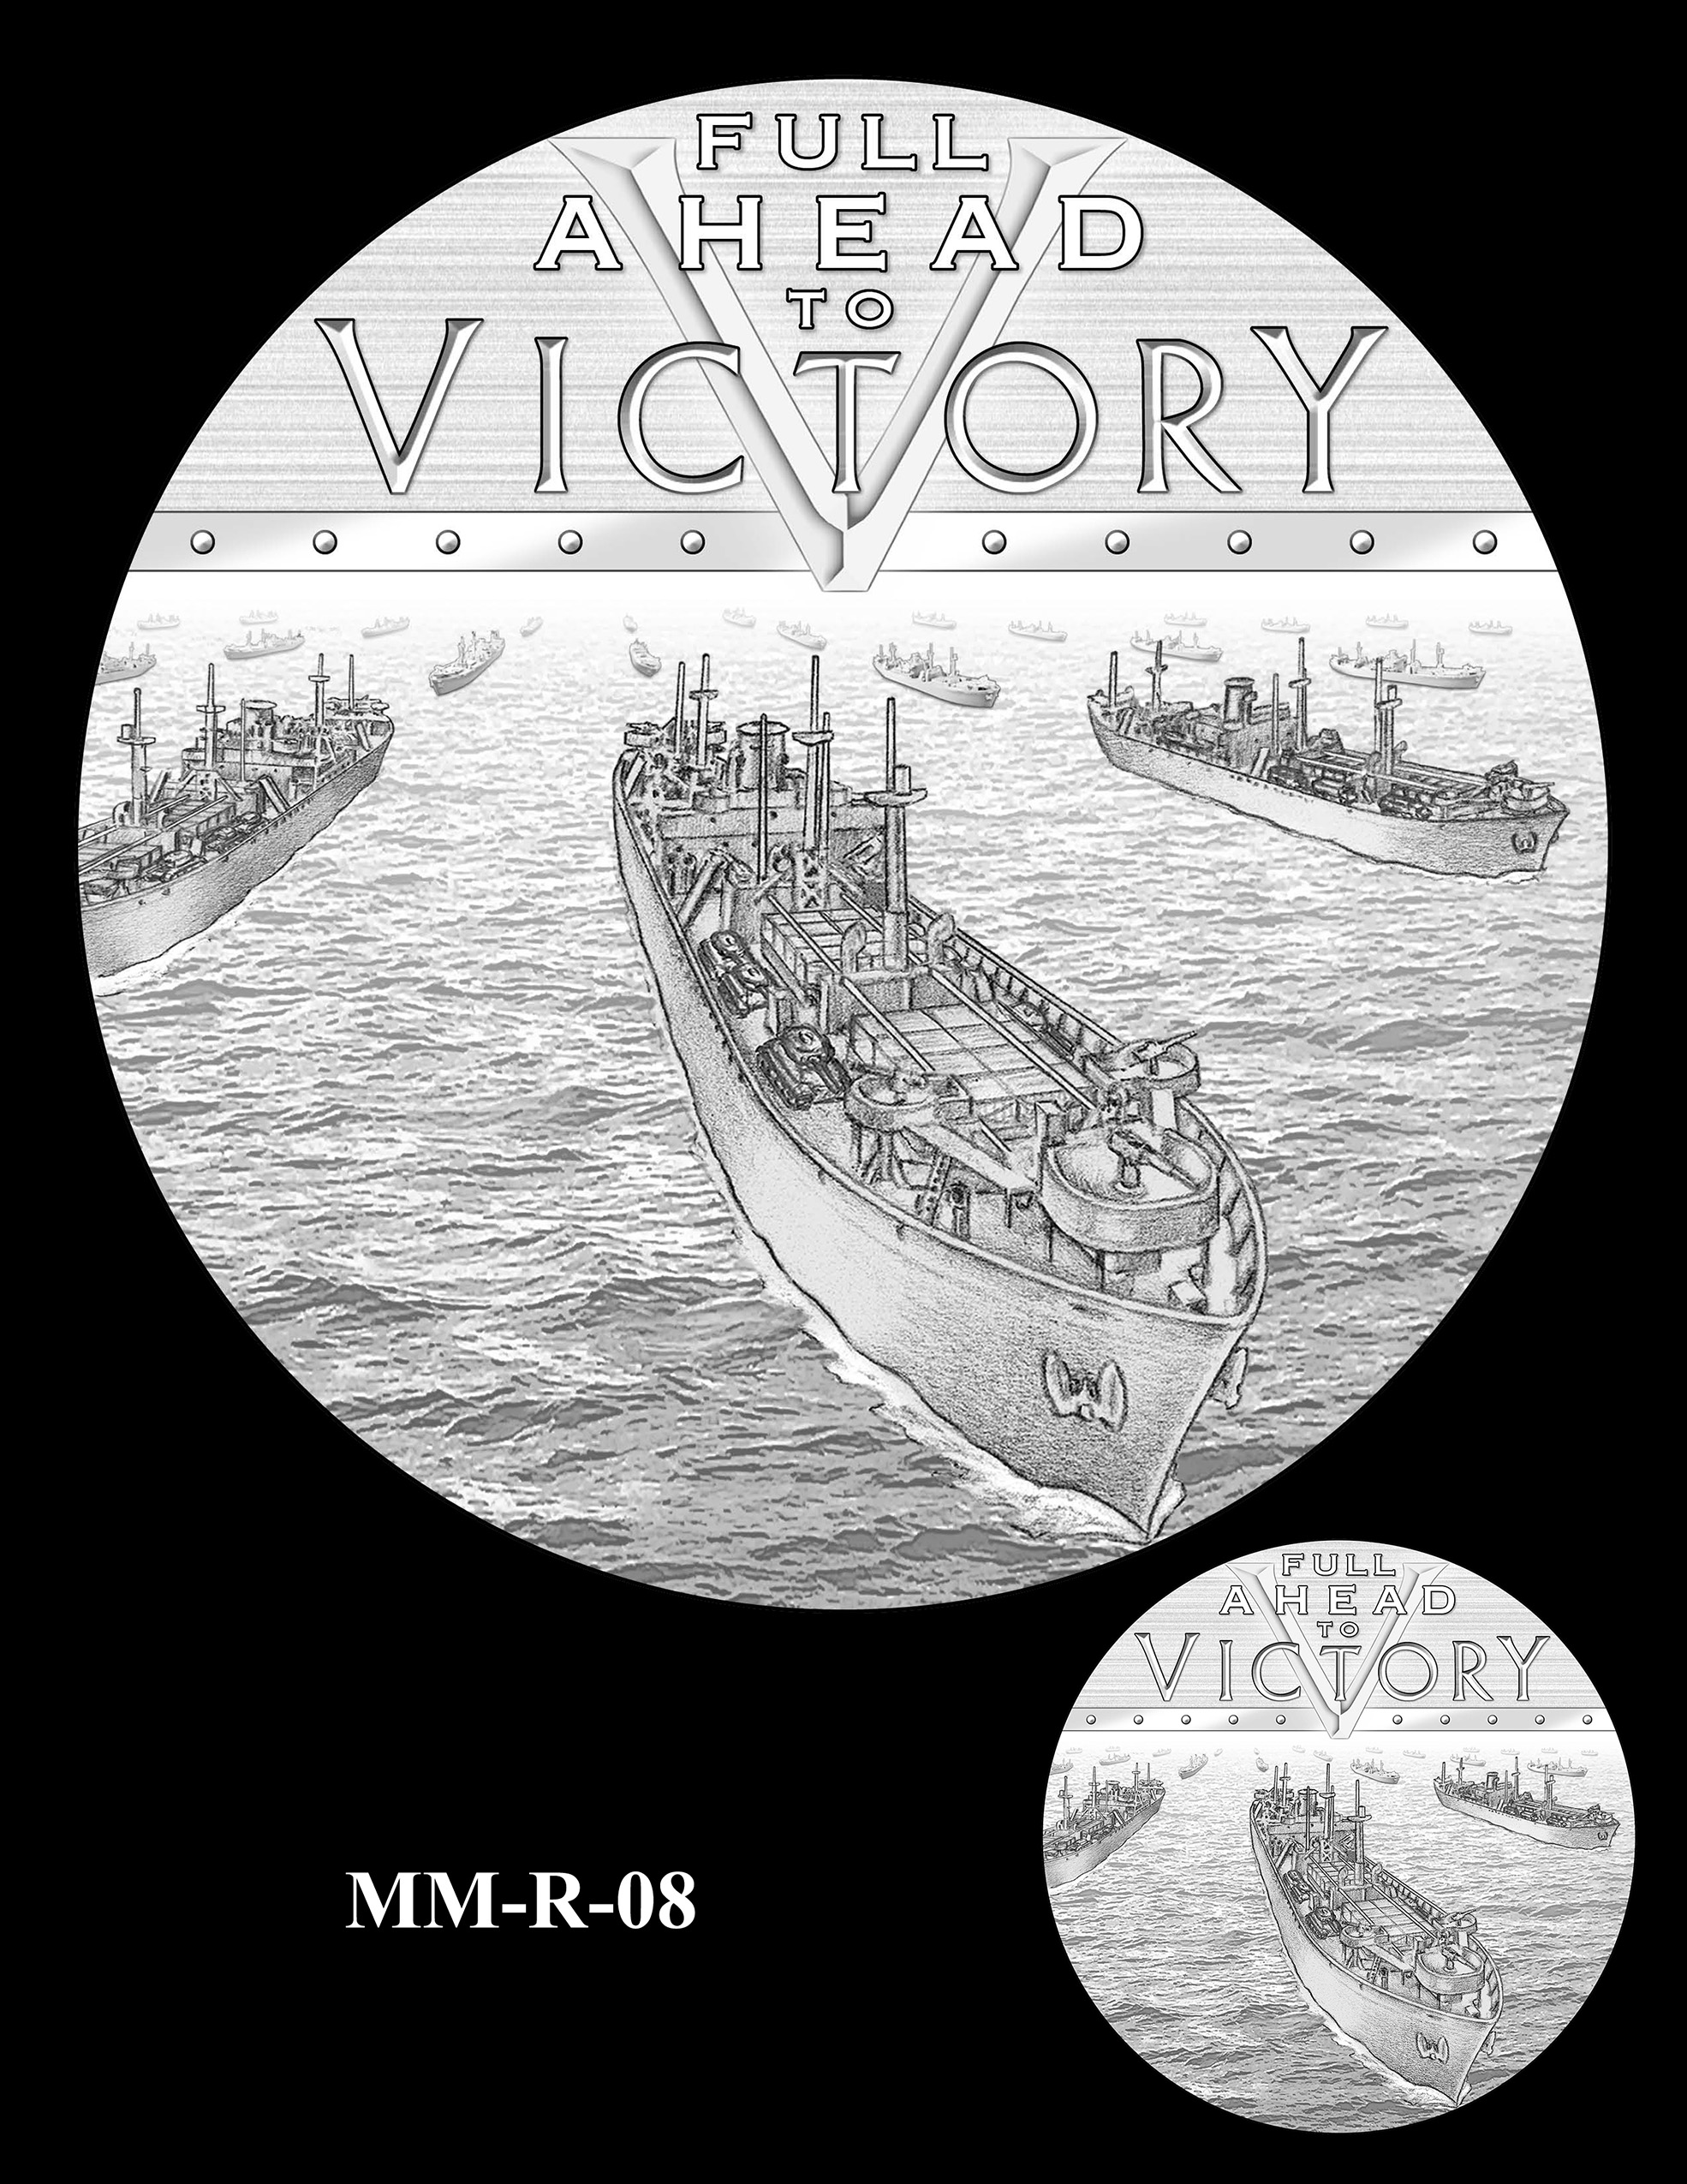 MM-R-08 -- Merchant Mariners of World War II Congressional Gold Medal